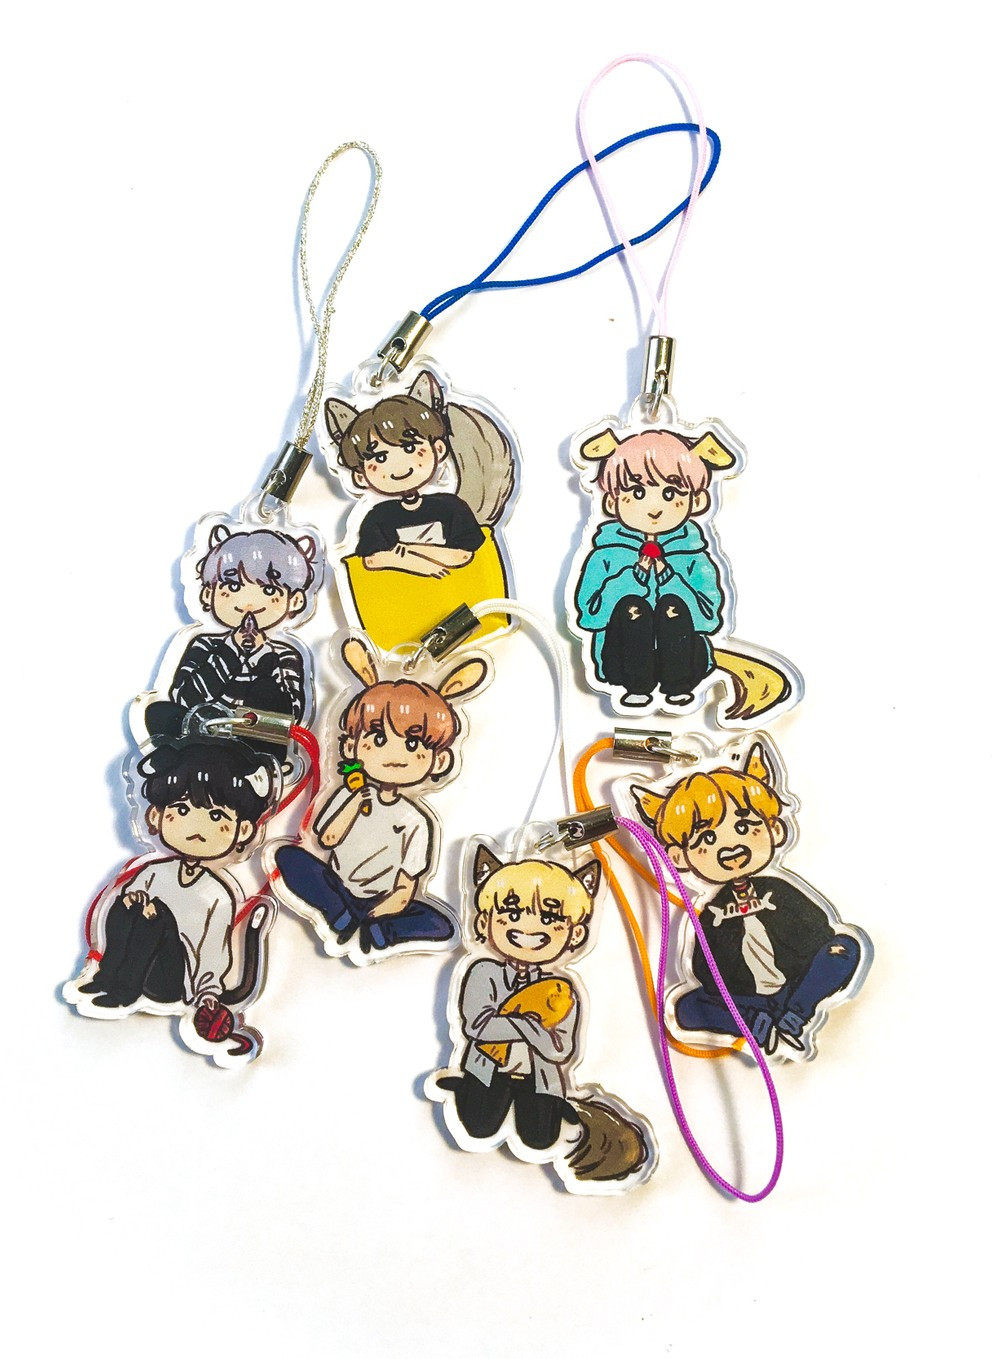 bts pets charms from minleaf